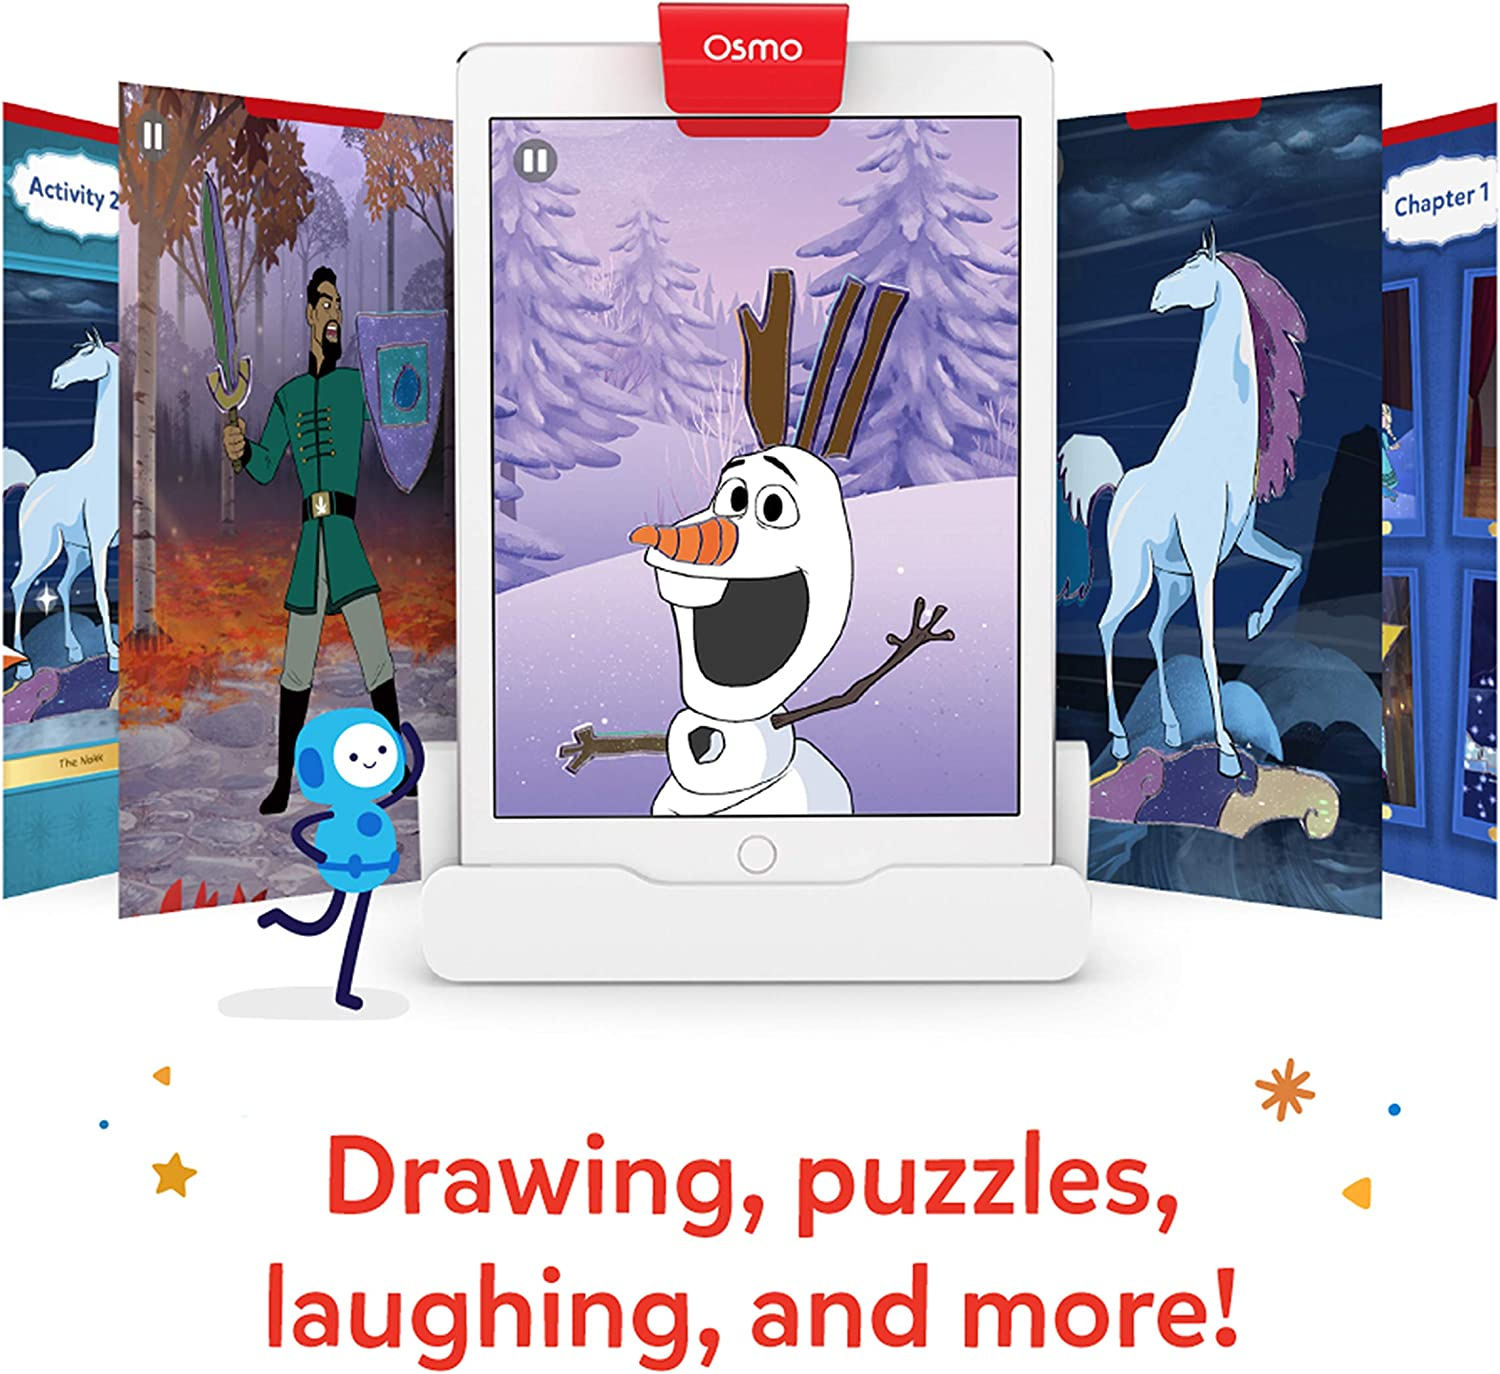 Anna Osmo 901-00015 Little Genius Starter Kit 4 Hands-On Learning Games /& 902-00012 R Super Studio Disney Frozen 2 Game-Ages 5-11-Learn to Draw Elsa Base Required Olaf-for iPad and Fire Tablet